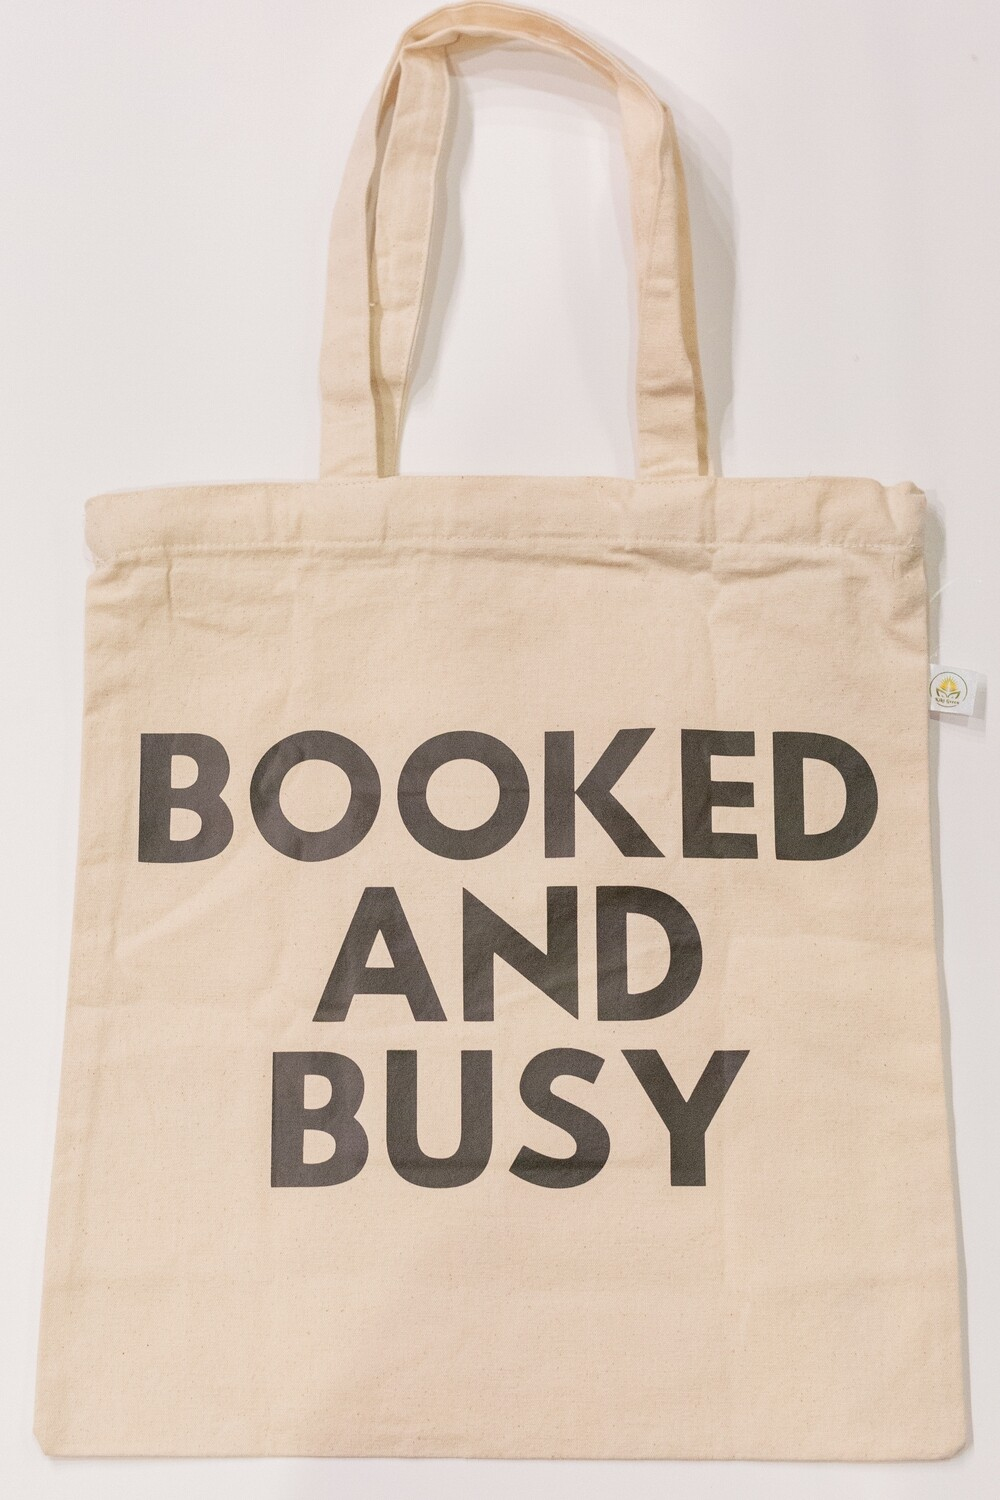 Booked and Busy Tote